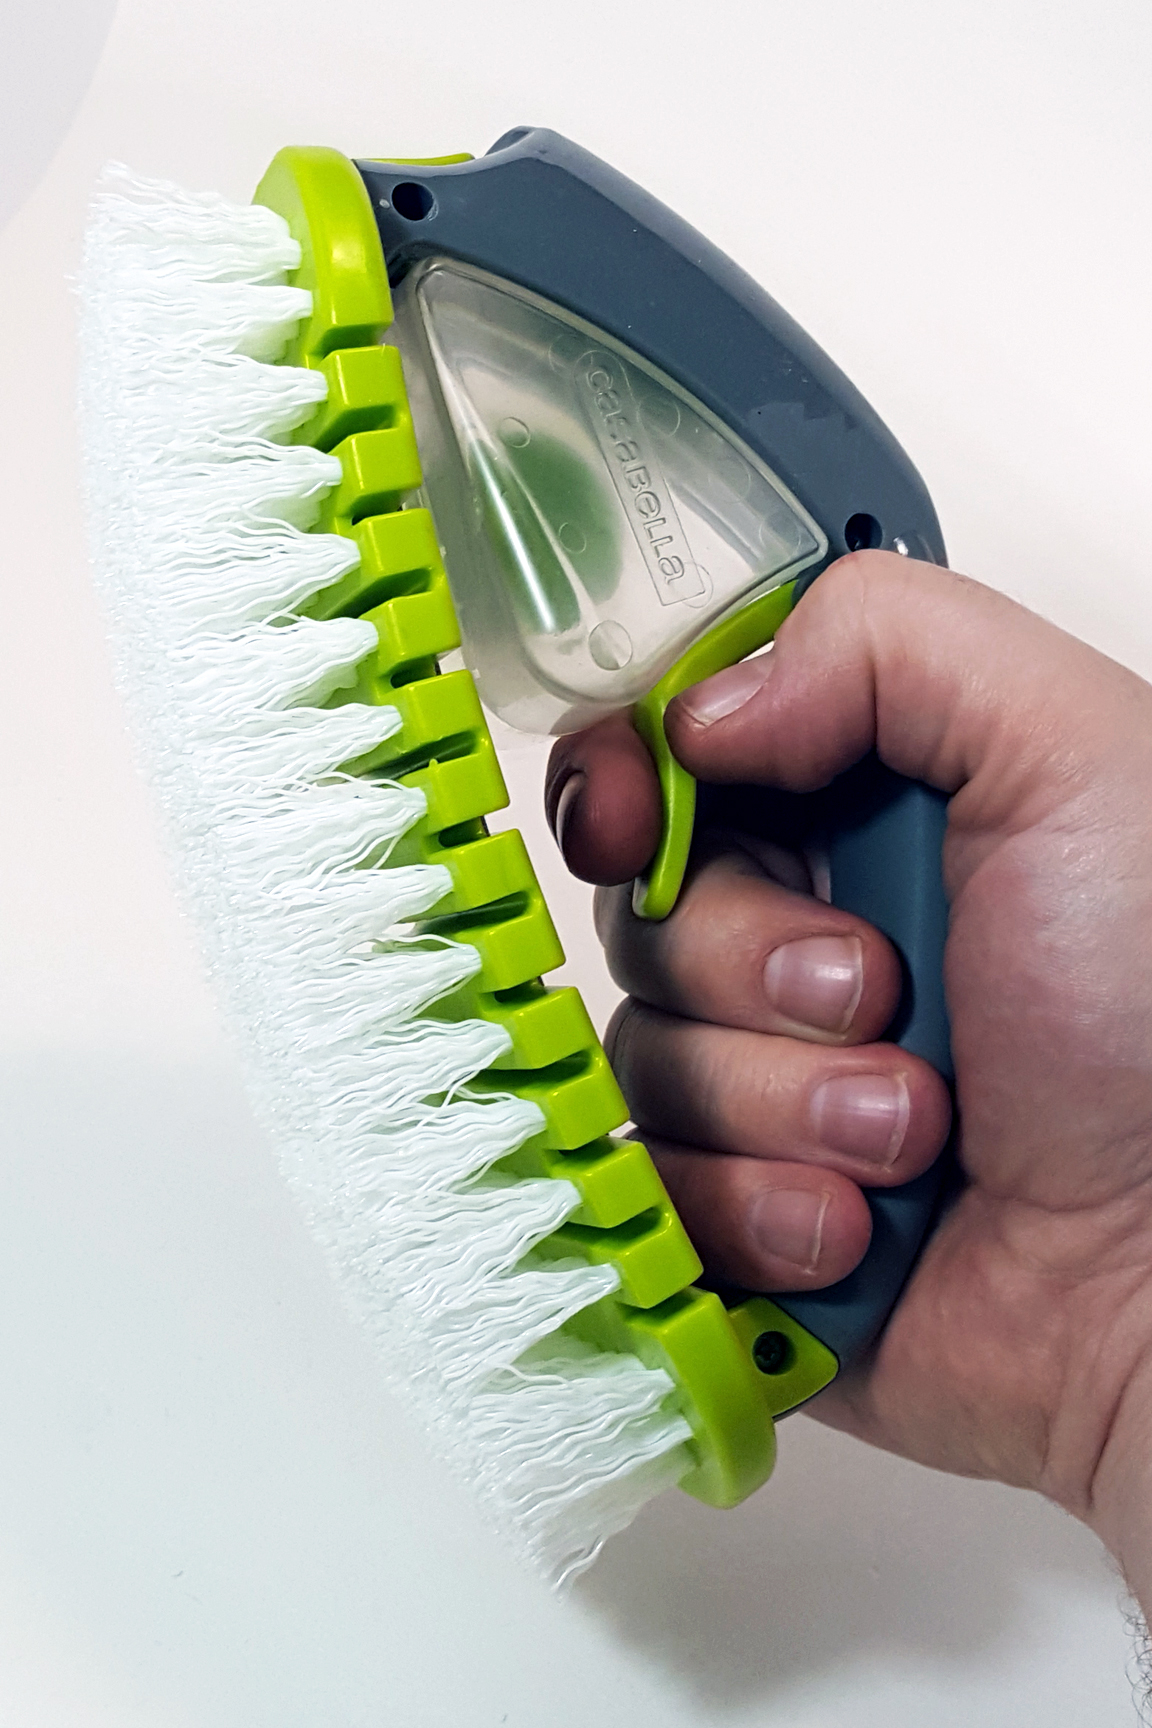 Large size allows for quick cleaning.